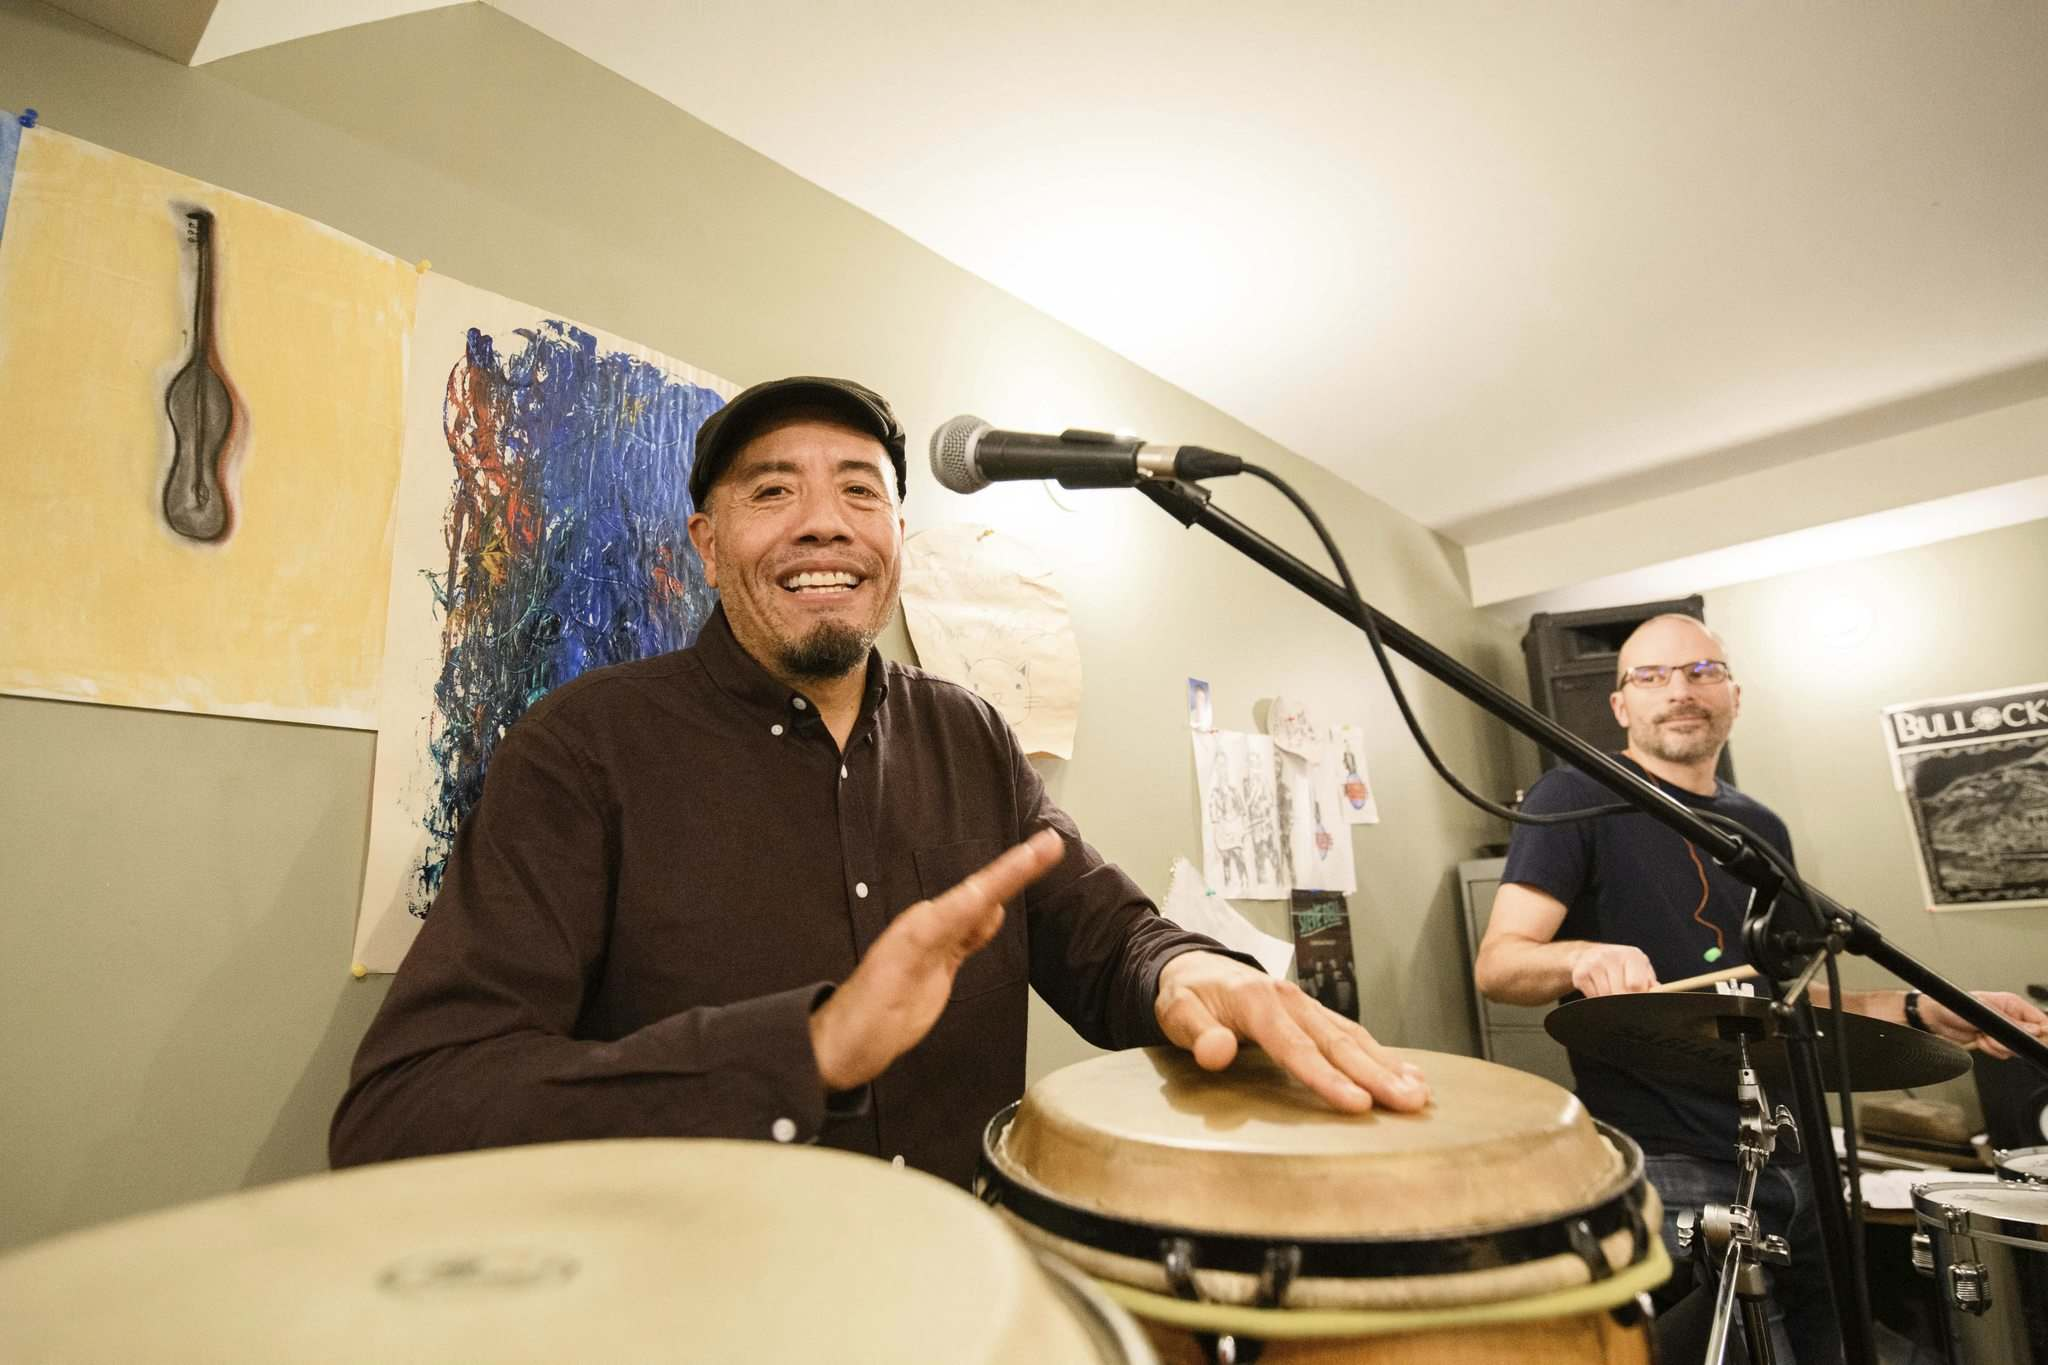 Papa Mambo leader and percussionist Rodrigo Muñoz. (Mike Sudoma / Winnipeg Free Press)